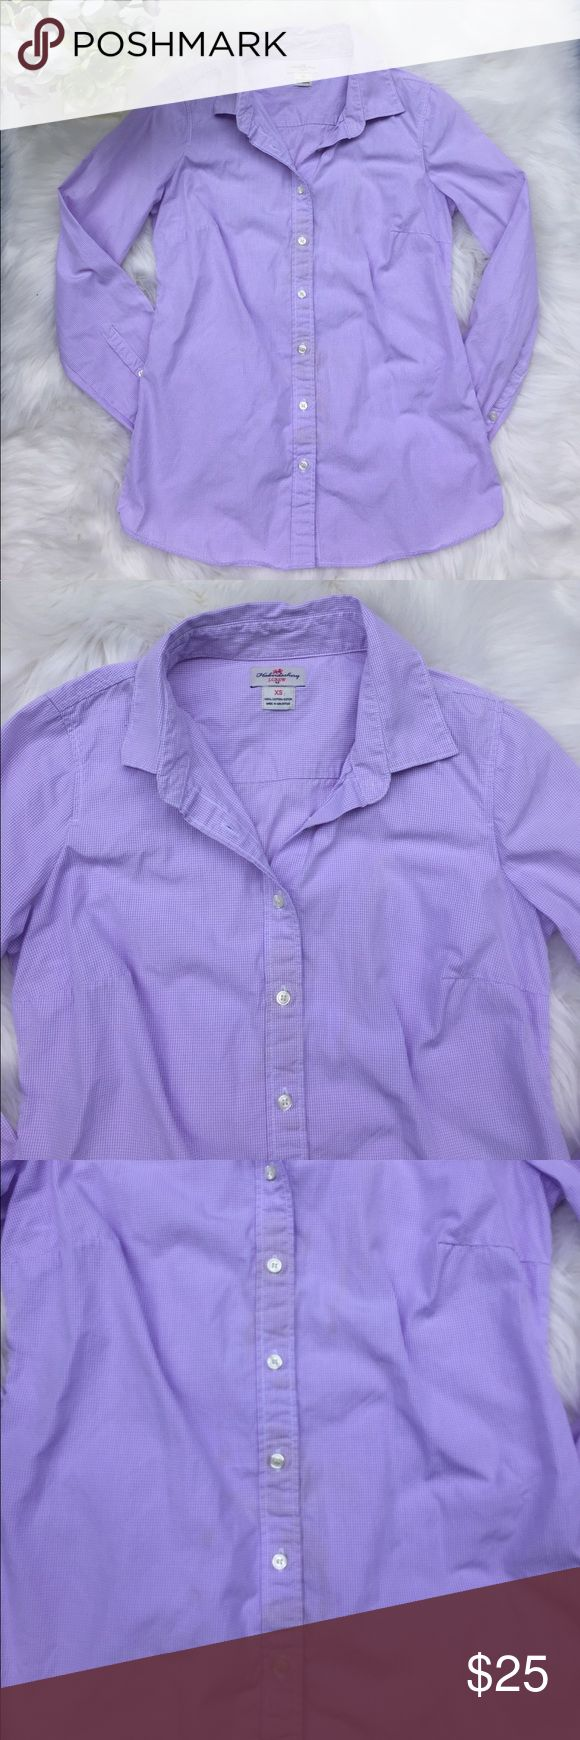 J. Crew  Haberdashery Button Up Shirt  Size XS ▪️J. Crew ▪️EUC ▪️Easily dressed up or down, this top will get you from the office to a night out without missing a beat. Light purple and white checker ▪️Measurements: Length approx. 25 inches, armpit to armpit is approx. 17 ½  inches, sleeves approx. 23 inches ▪️Size XS J. Crew Tops Button Down Shirts